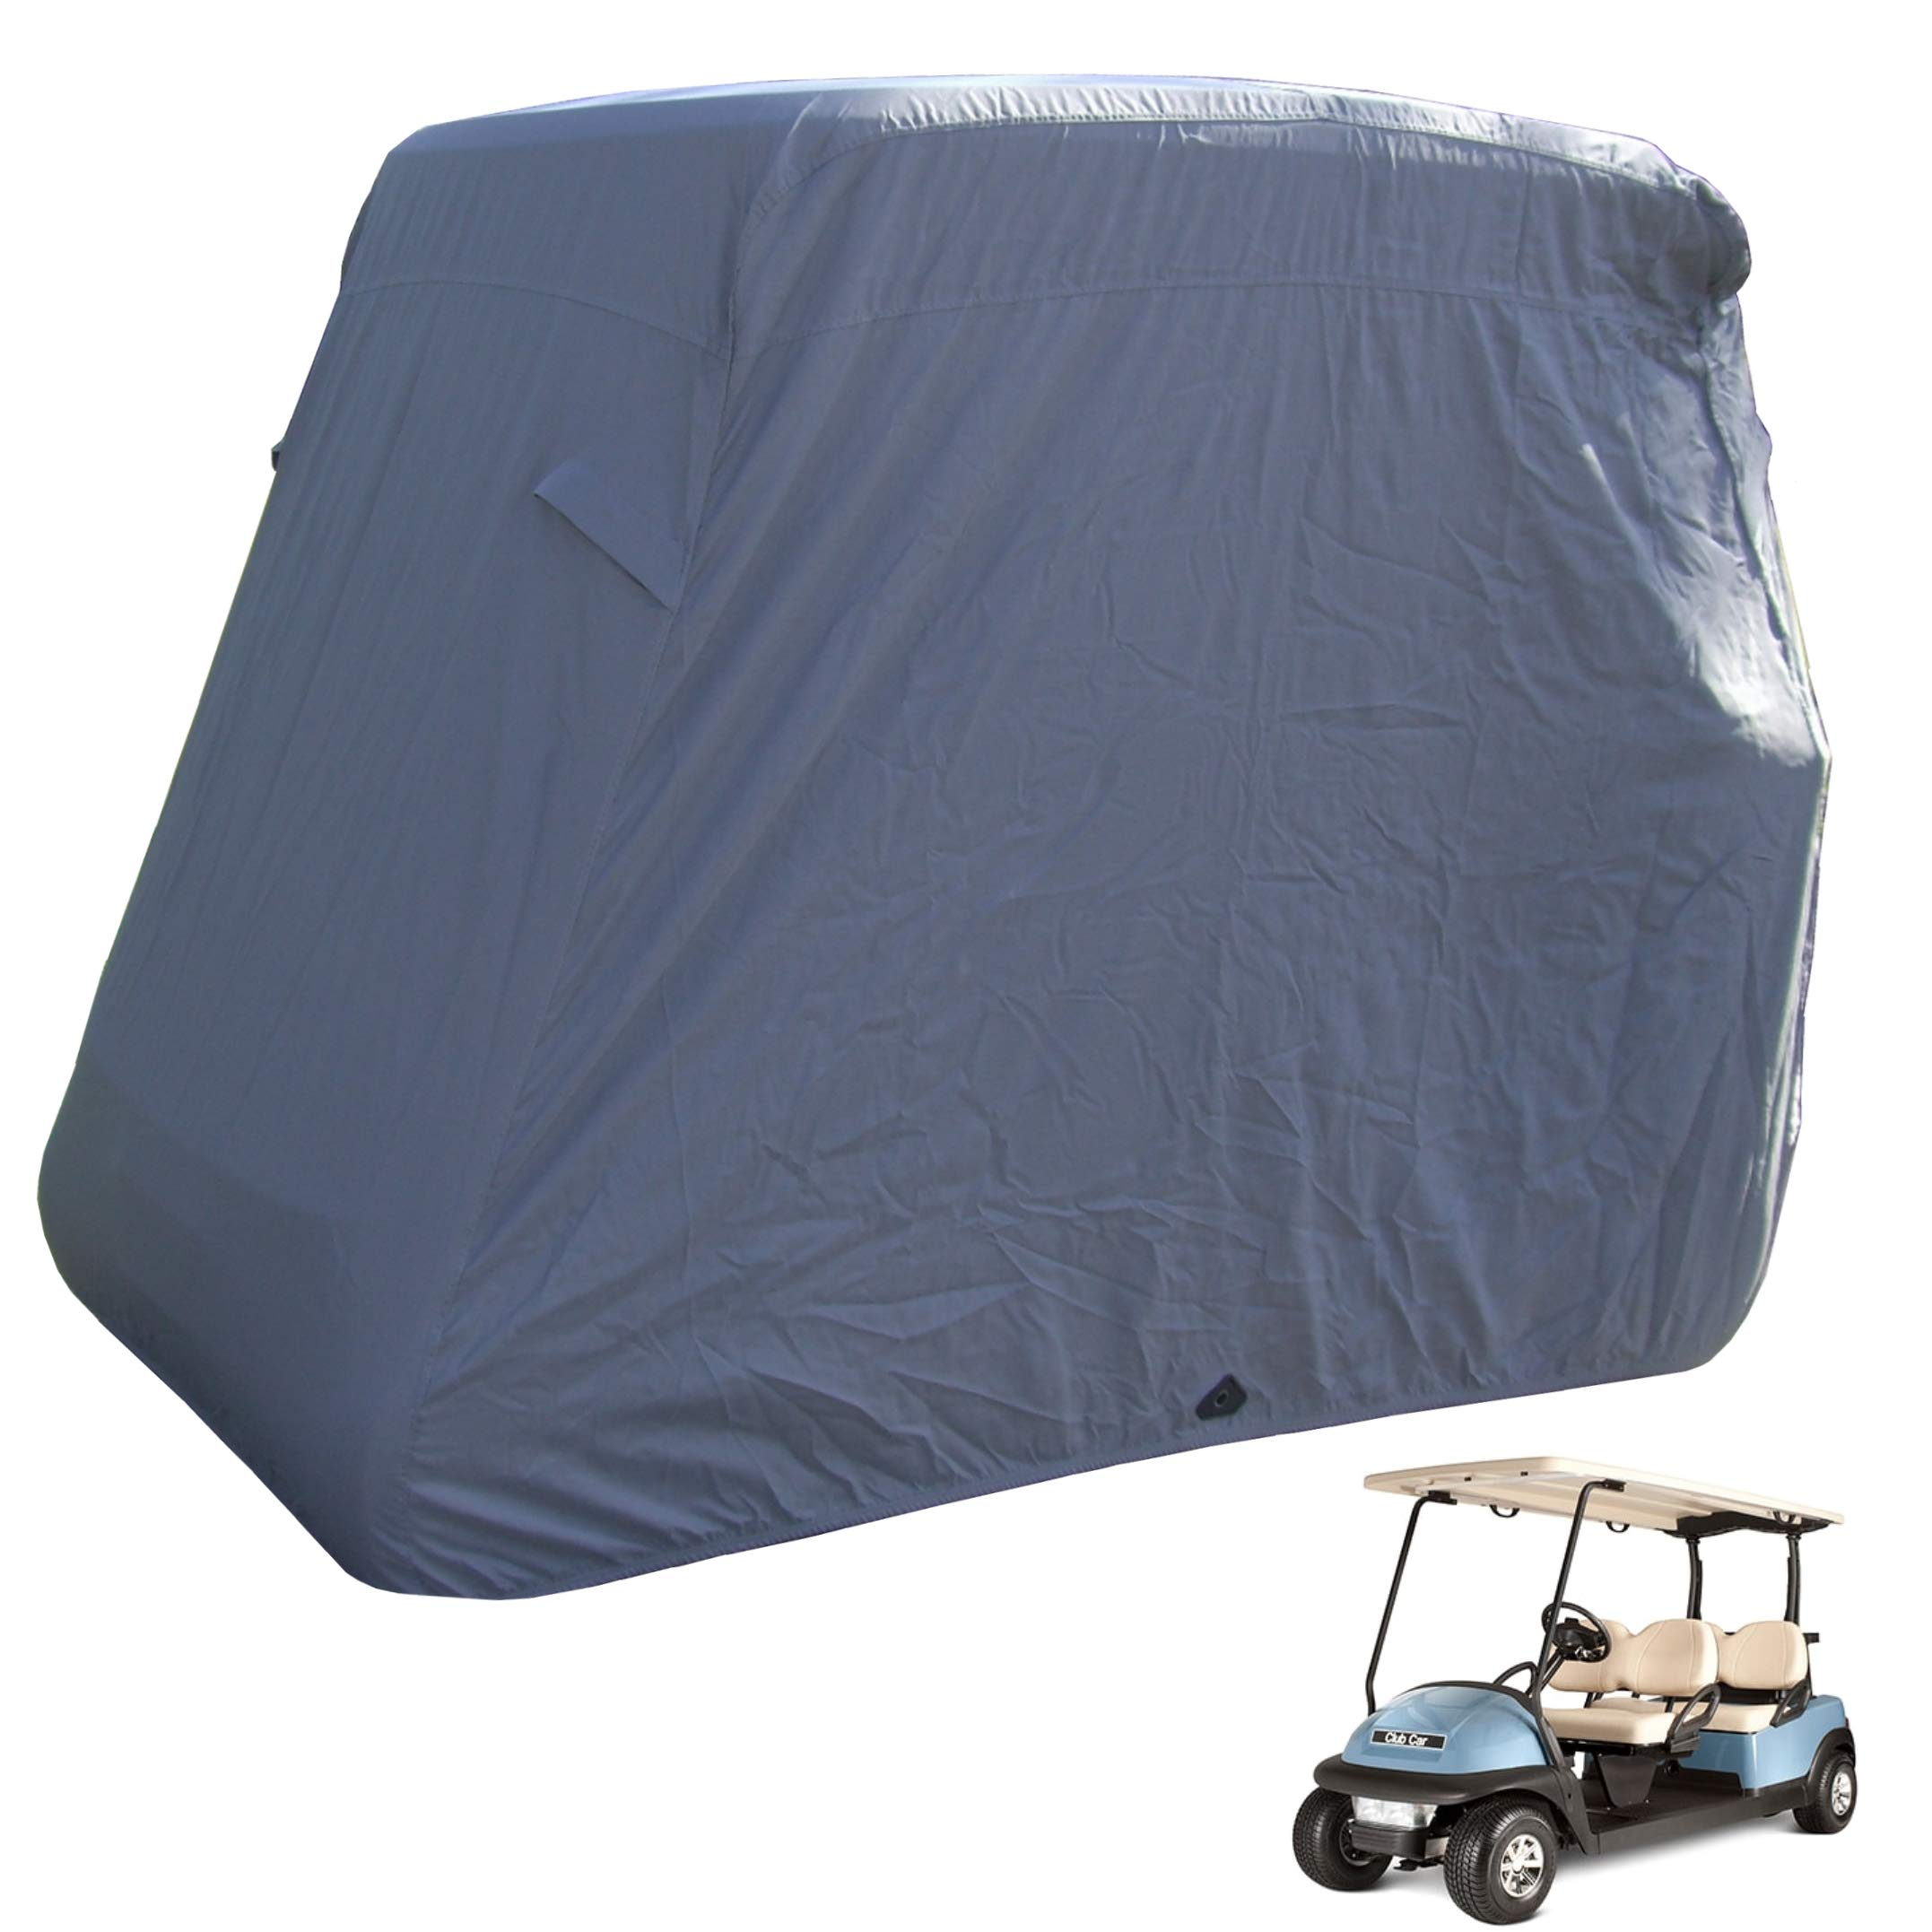 Deluxe 4 Passenger Golf Cart Cover roof 80'' L Grey, Fits E Z GO, Club Car and Yamaha G Model - Fits GEM e2